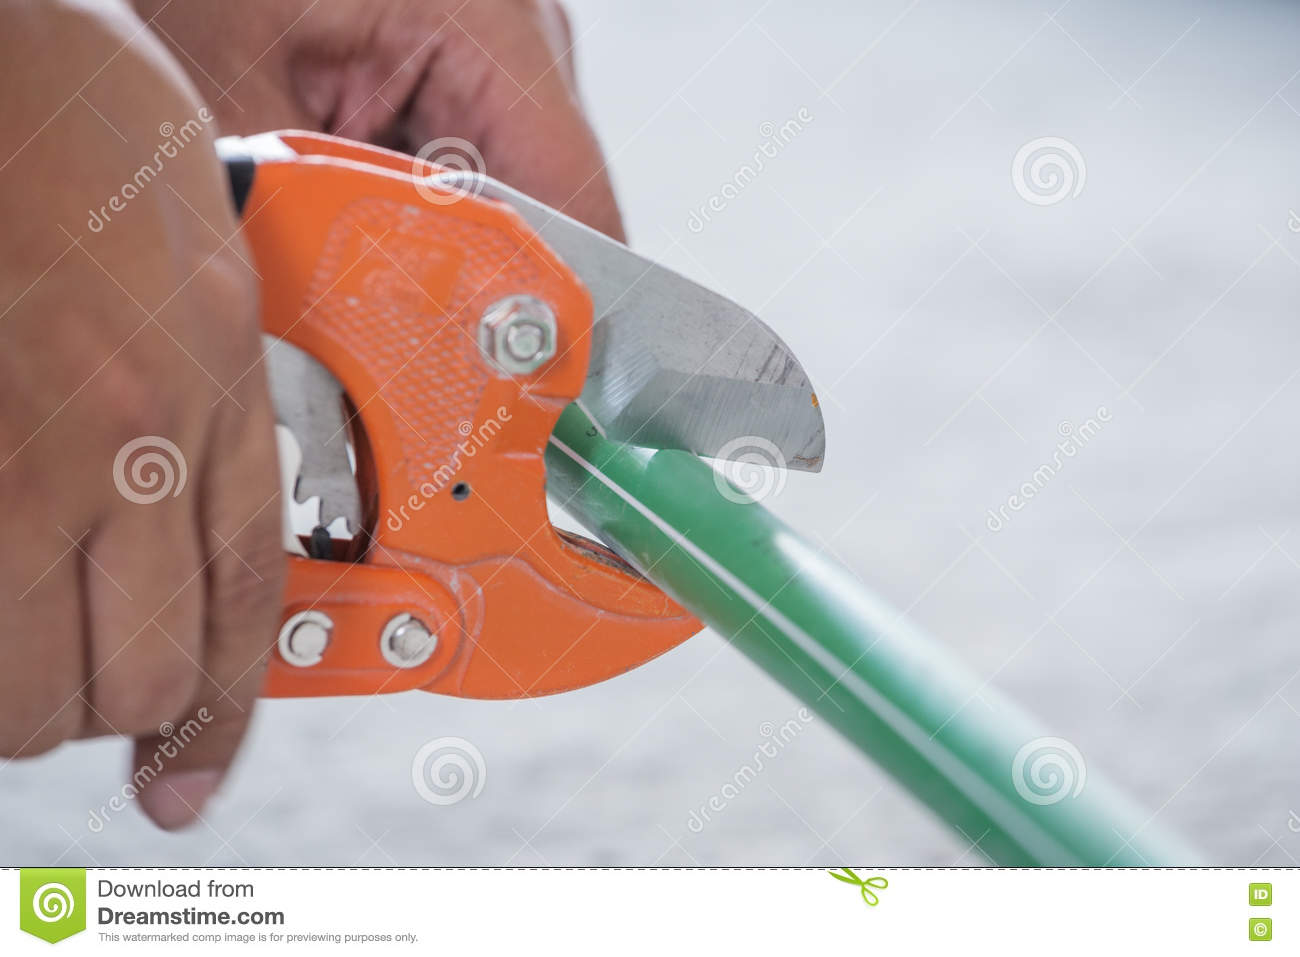 Hand Of Working Cutting PPR Pipe Stock Image - Image of fitting